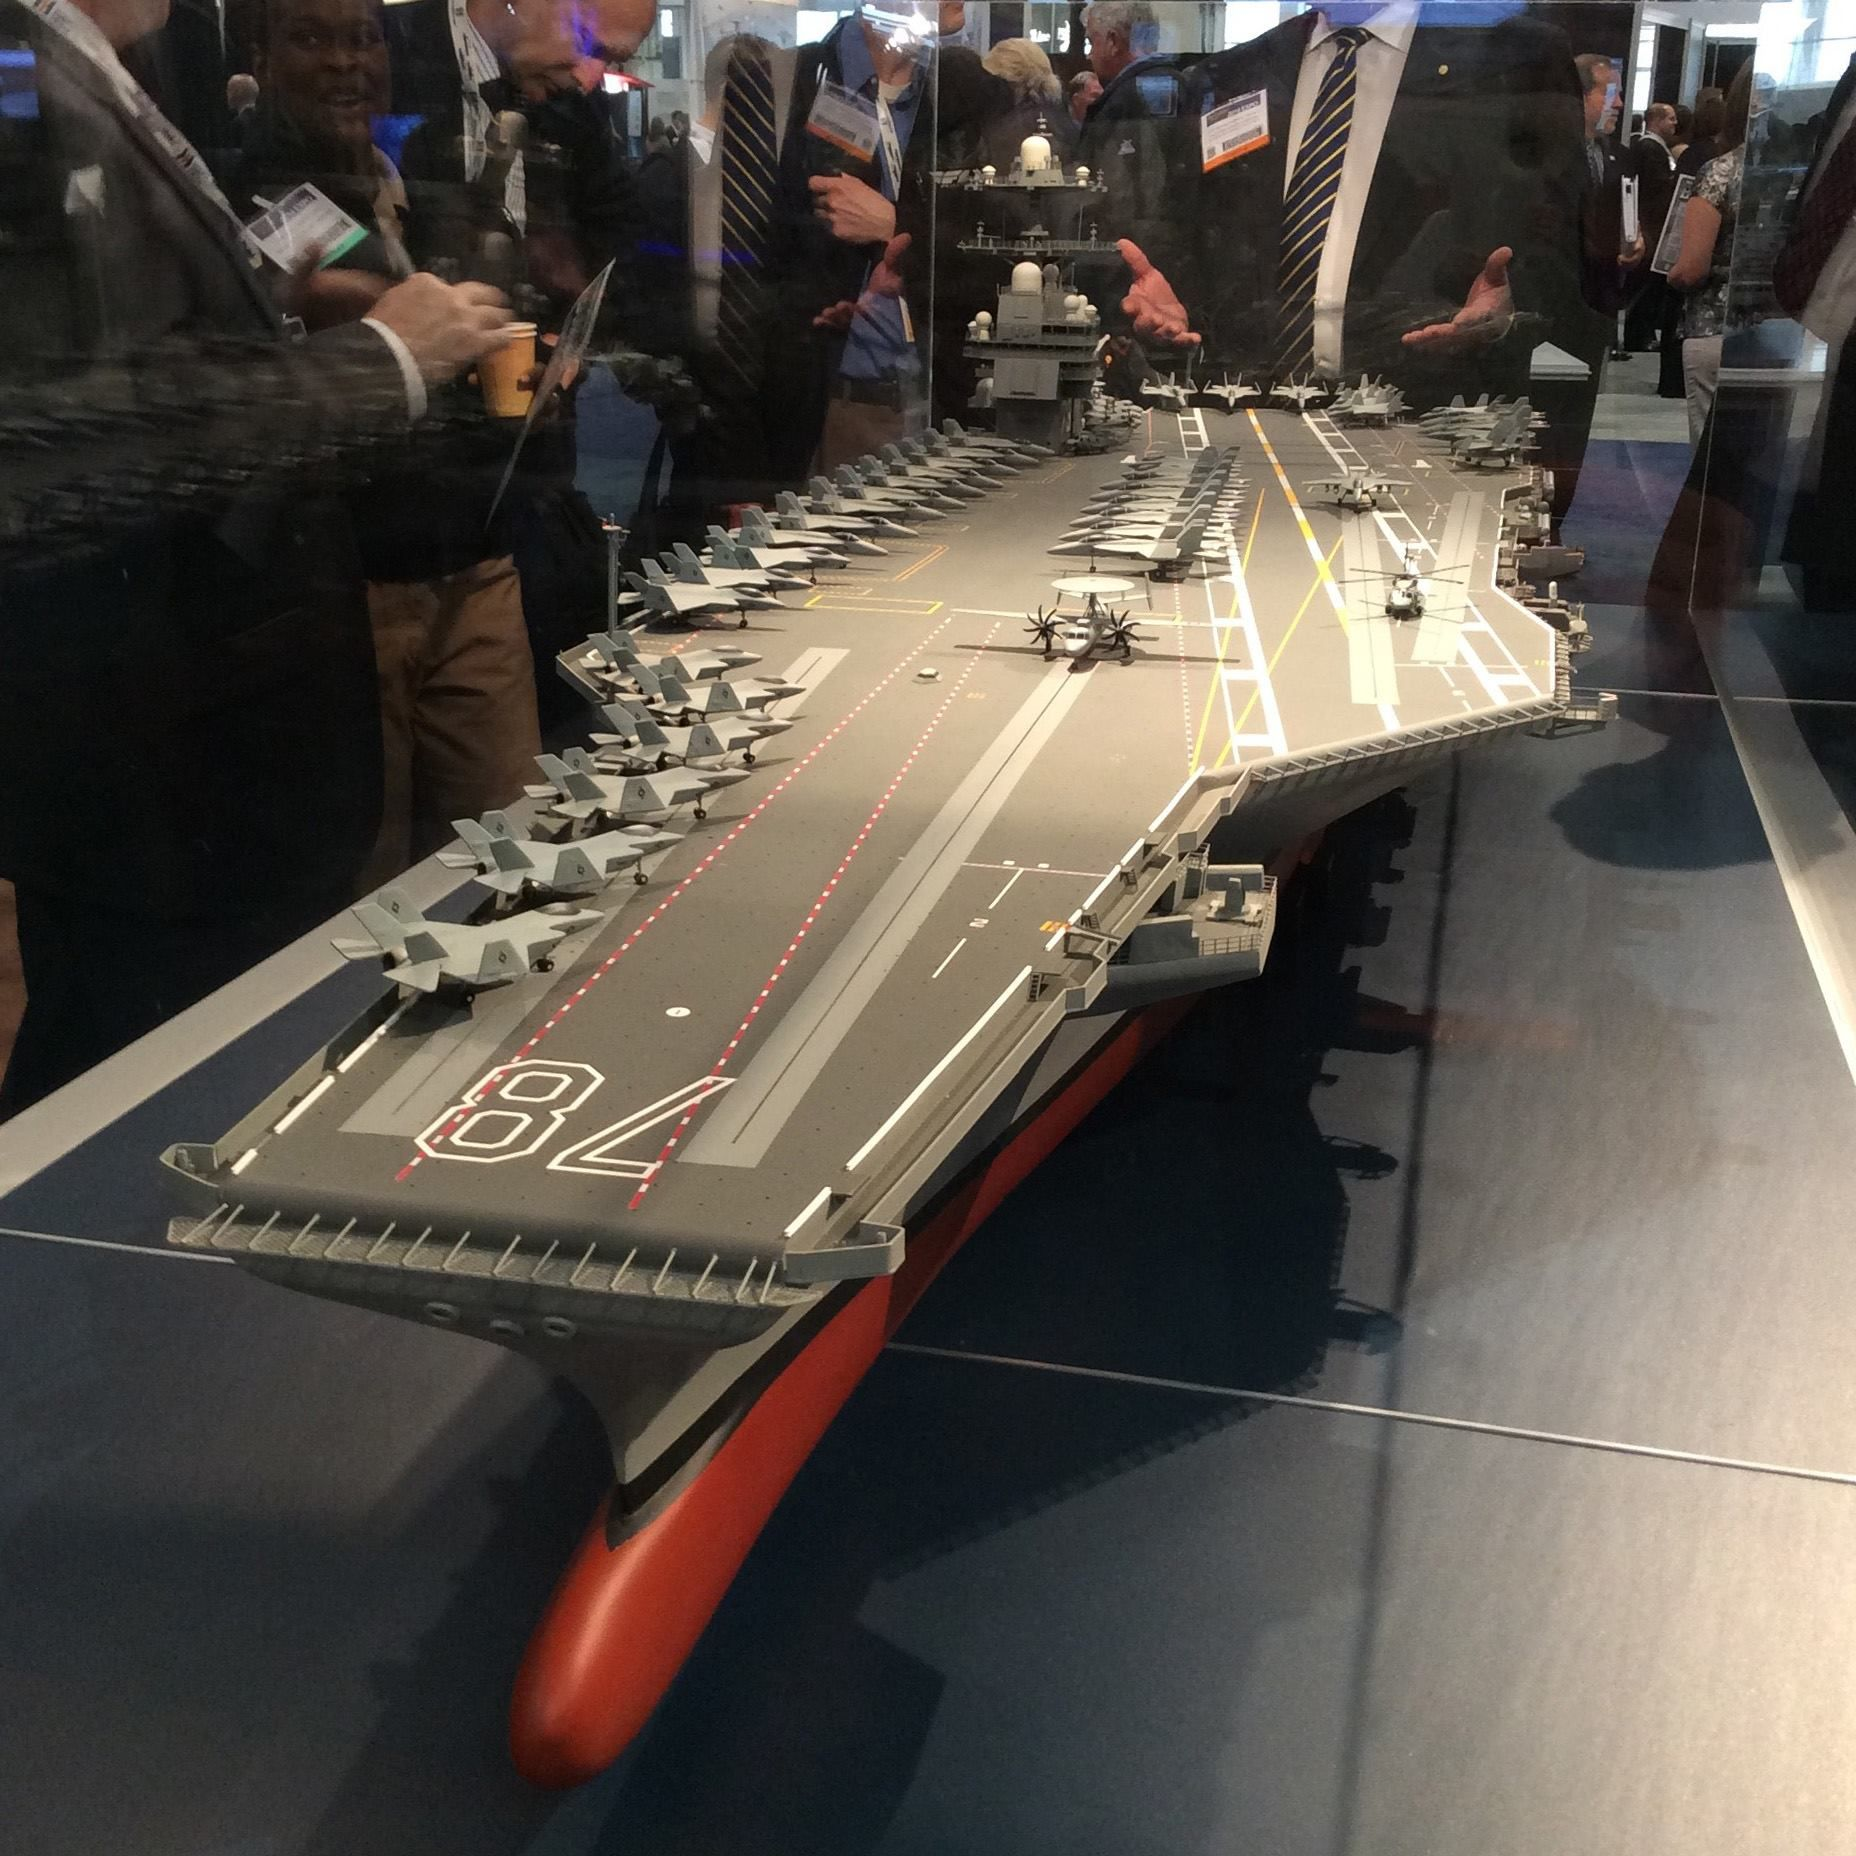 Aircraft carrier models large scale - Model Of The Newest Aircraft Carrier Uss Gerald Ford Cvn 78 At